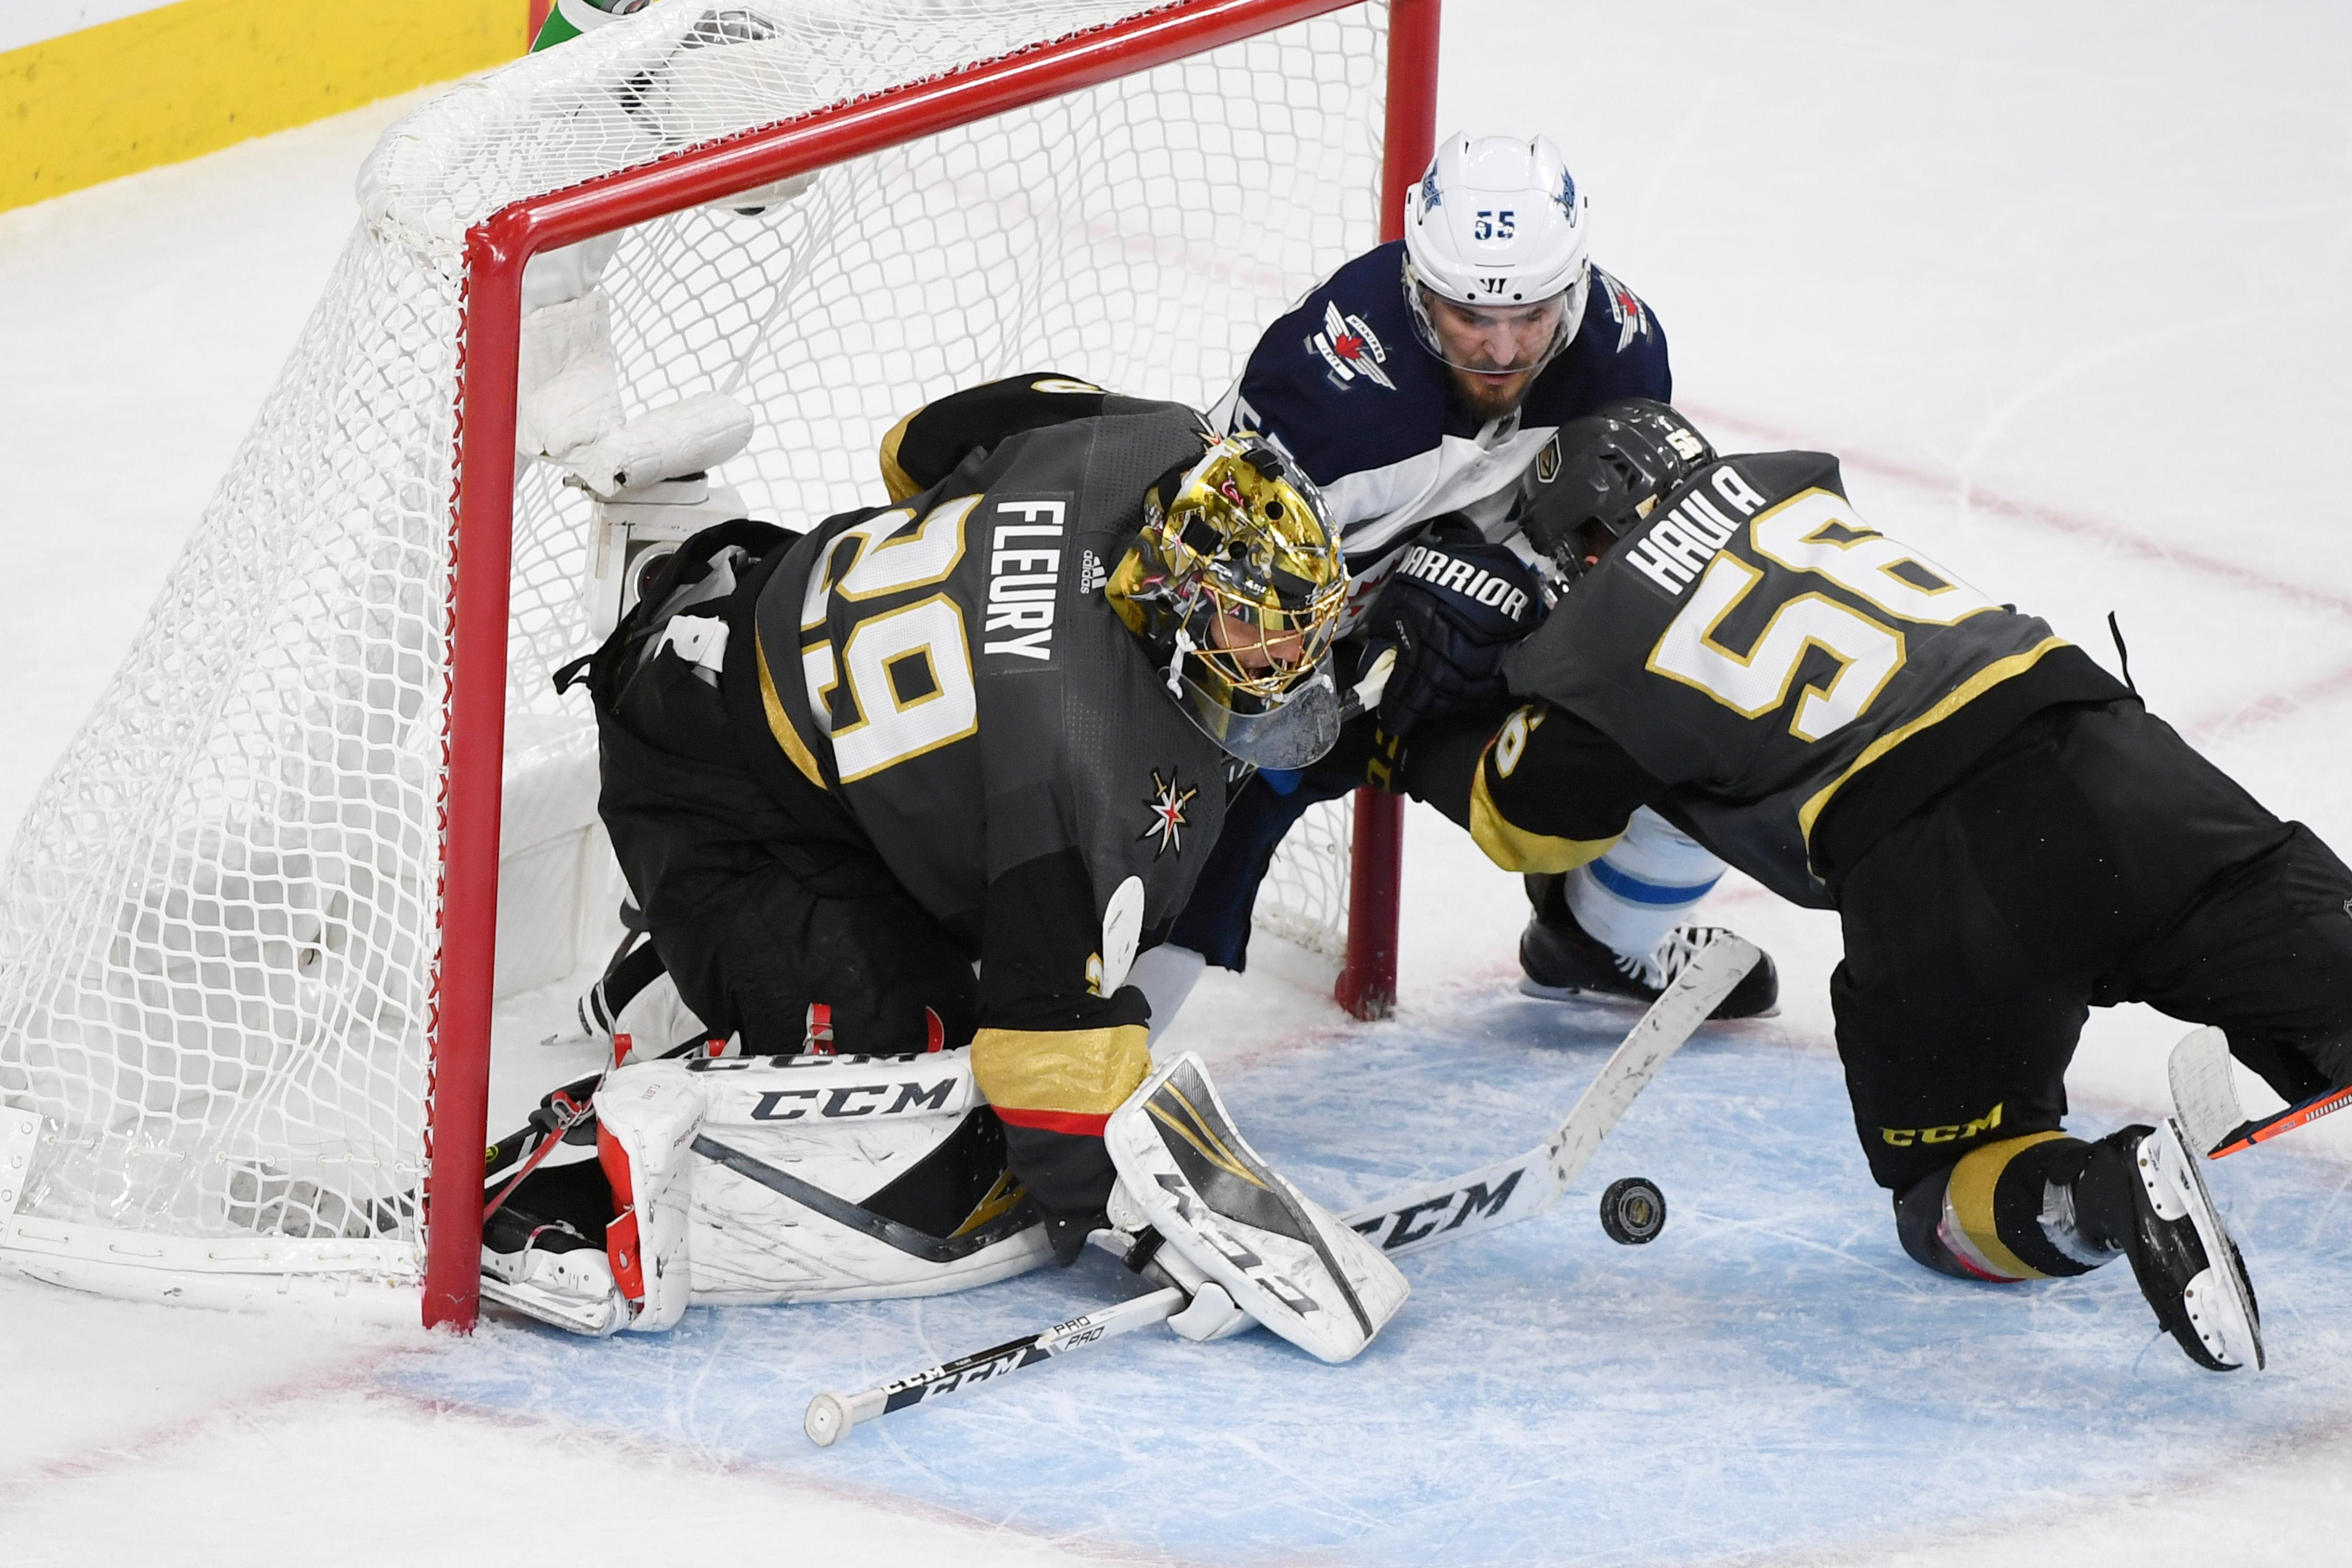 Vegas Golden Knights left wing Erik Haula (56) shoves Winnipeg Jets center Mark Scheifele (55) into the net as Vegas Golden Knights goaltender Marc-Andre Fleury (29) stops a shot during Game 3 of their NHL hockey Western Conference Final game Wednesday, May 16, 2018, at T-Mobile Arena. The Golden Knights won 4-2 to take a 2-1 lead in the series. CREDIT: Sam Morris/Las Vegas News Bureau